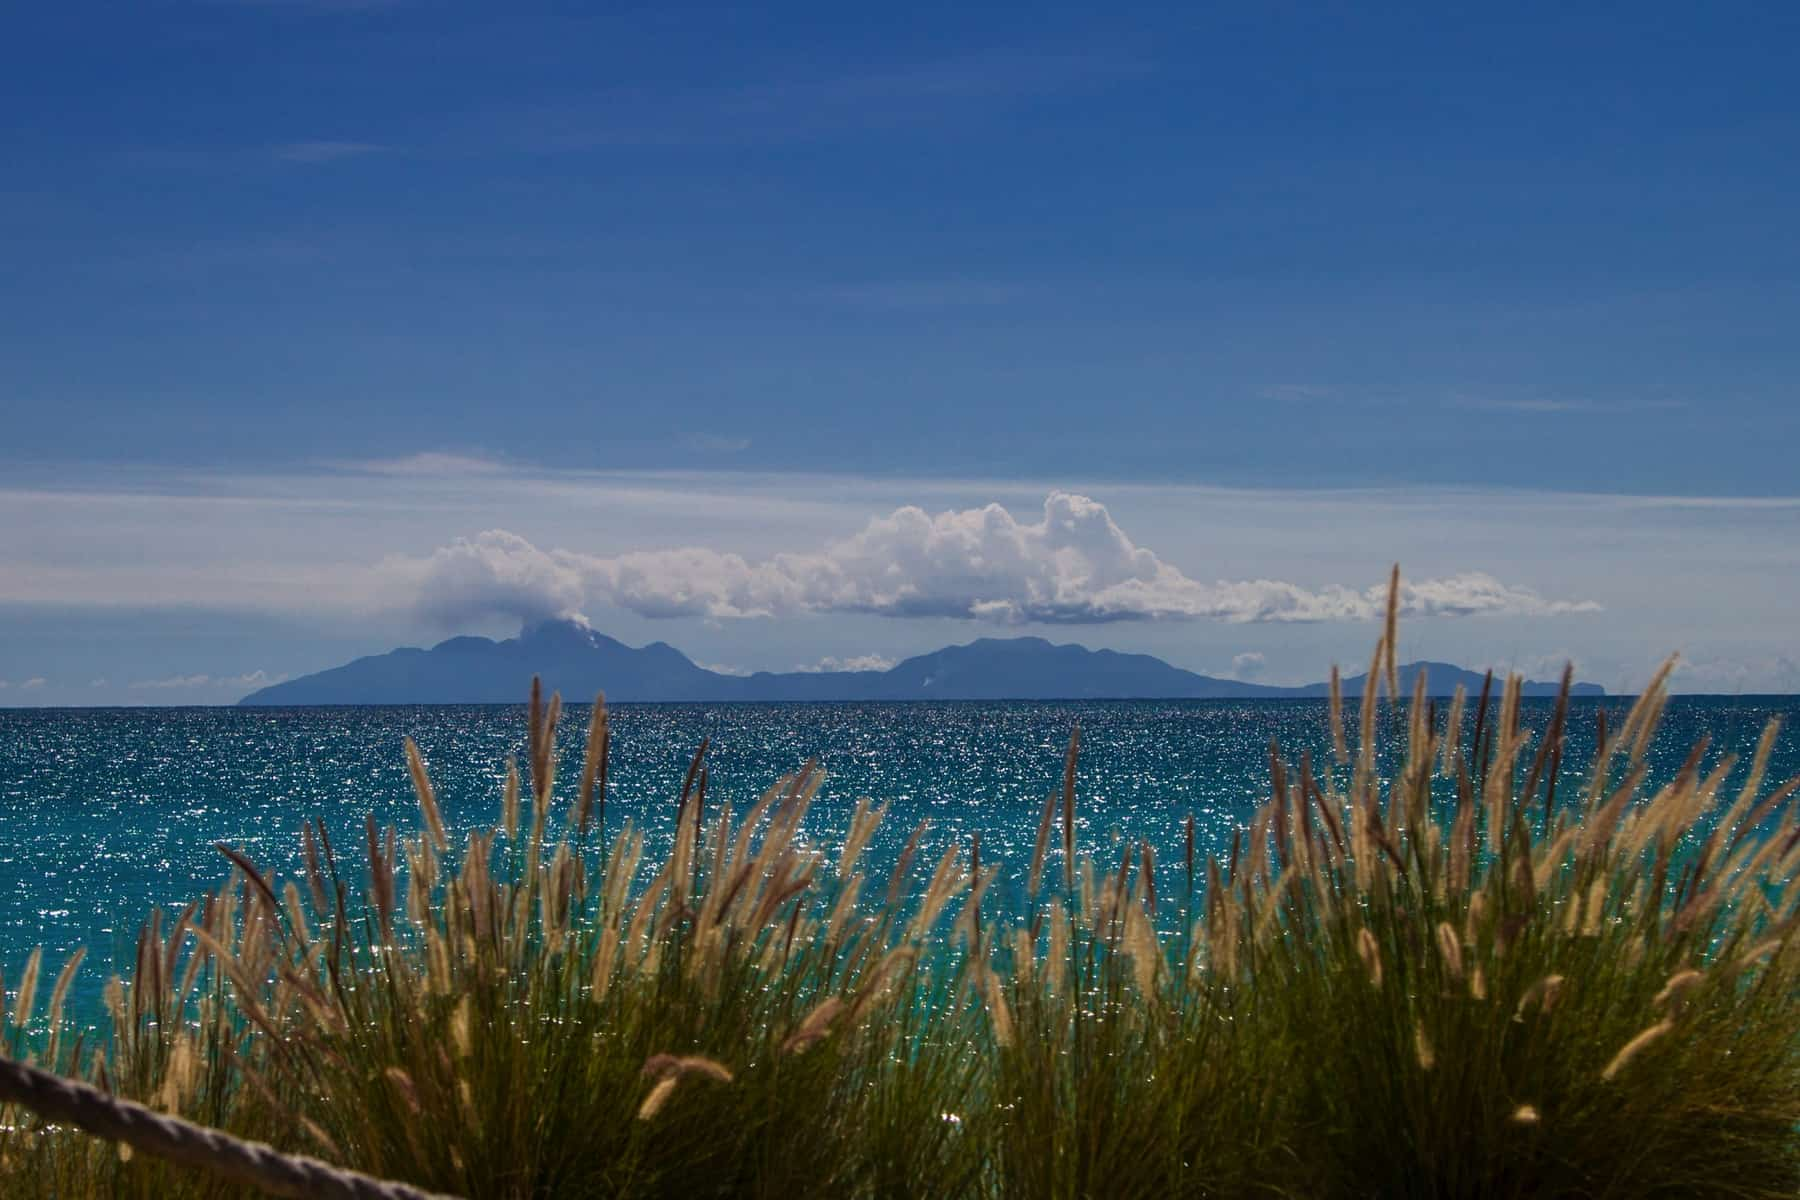 grass with ocean view